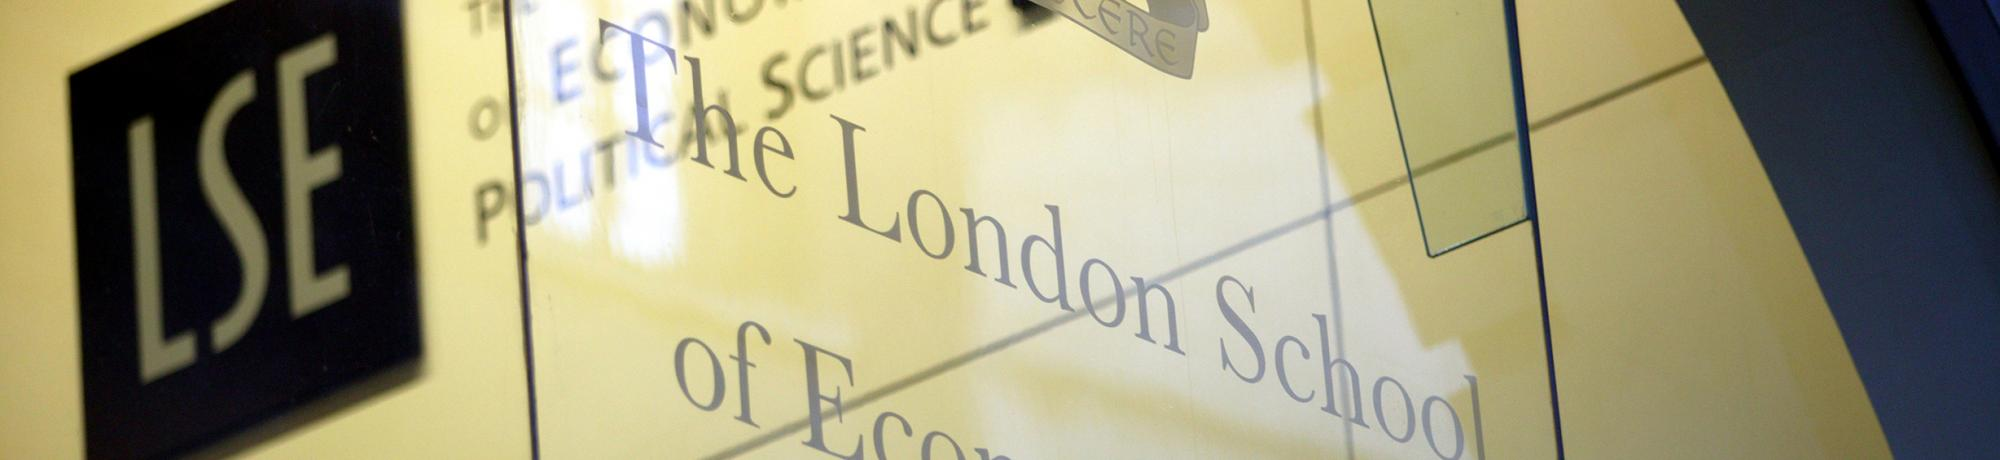 UC Davis Study Abroad, Quarter Abroad UK, Political Science at the London School of Economics Program, Header Image